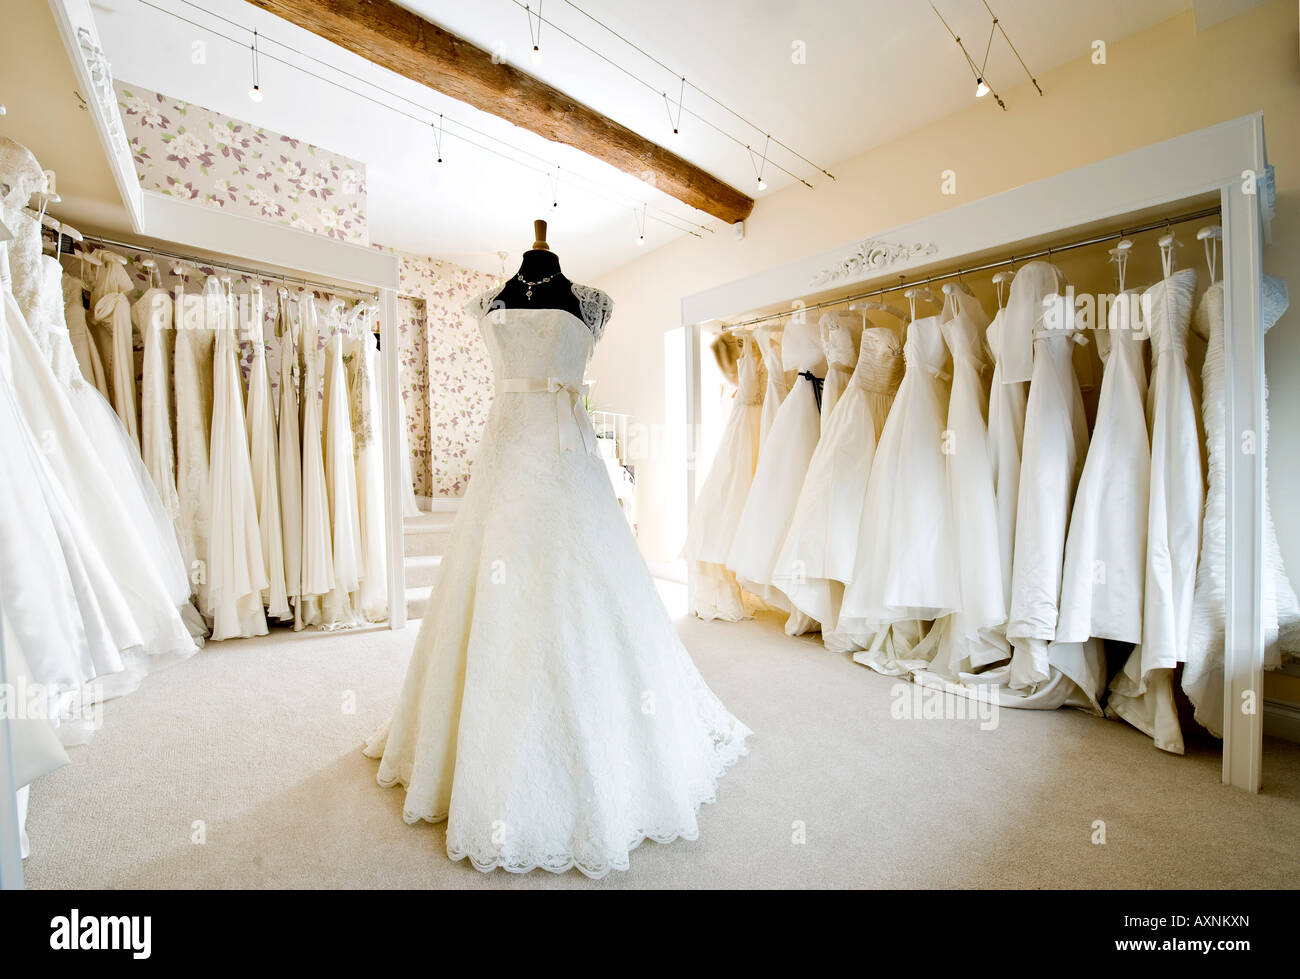 Interior of wedding dress gown in bridal boutique shop for Best stores for dresses for weddings